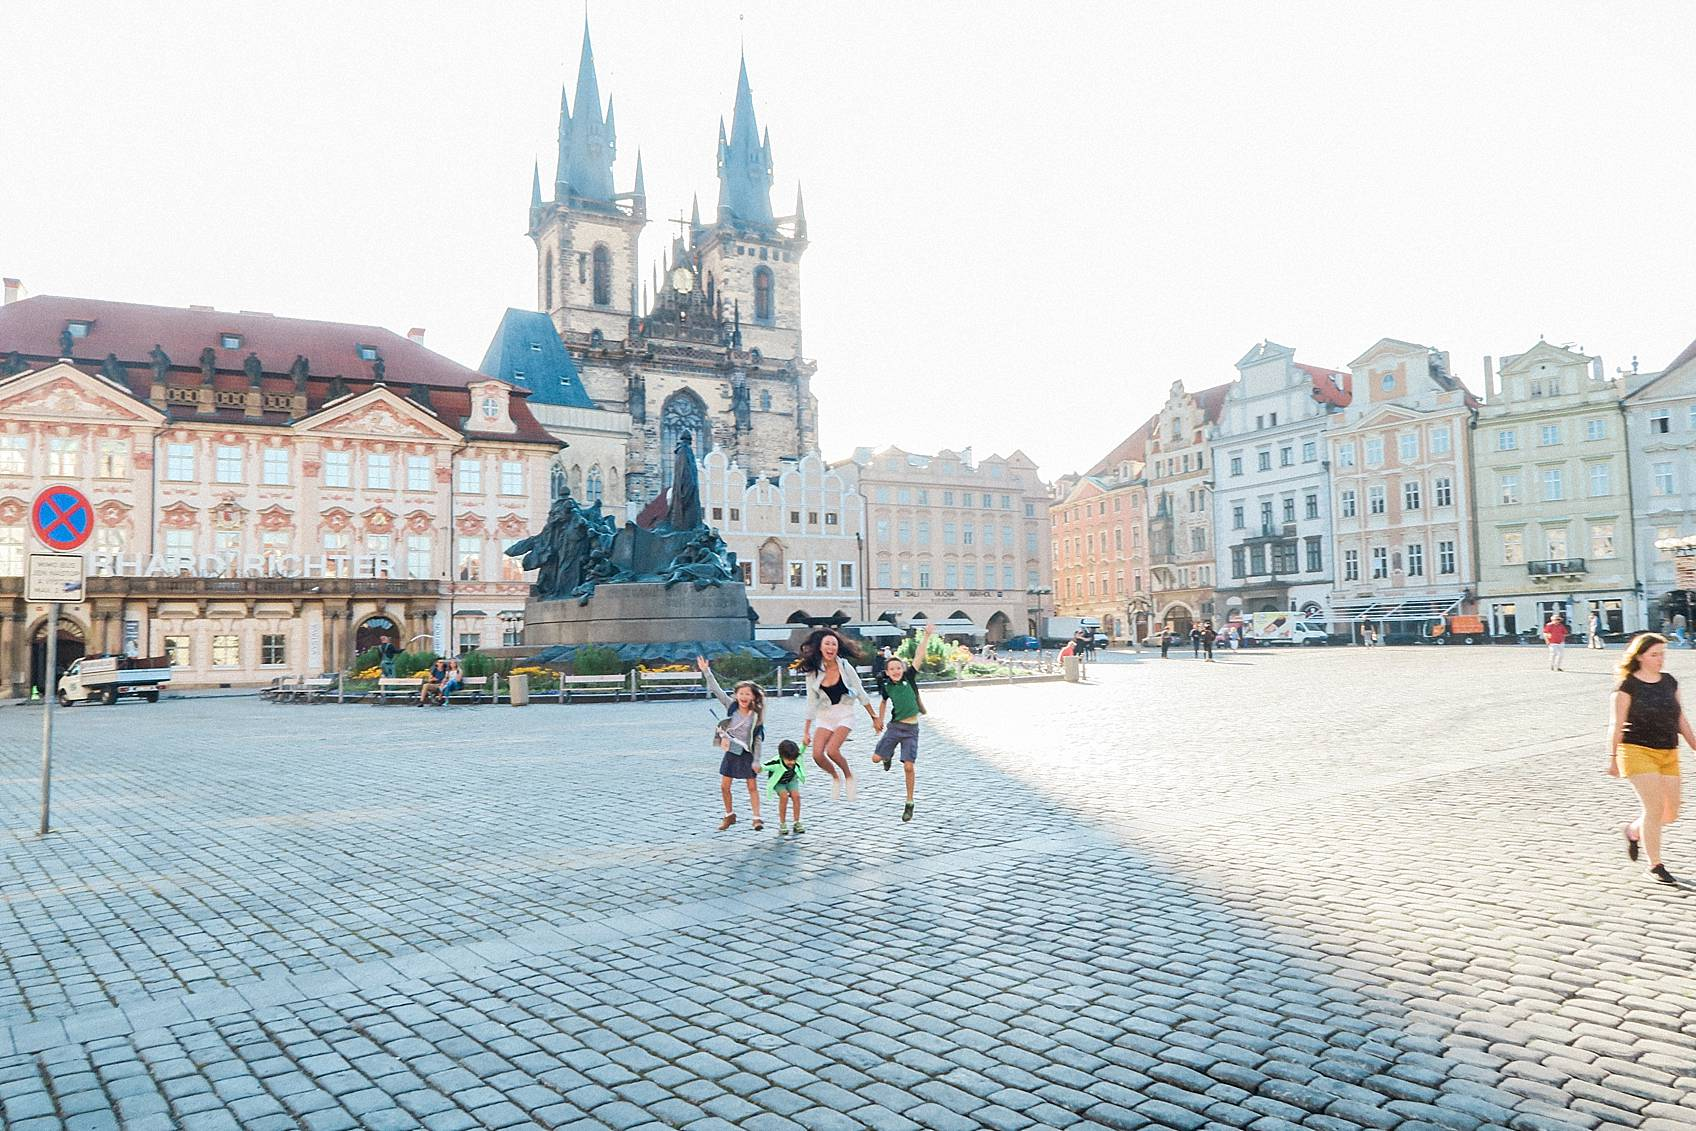 Photo guide to Prague: Old town square